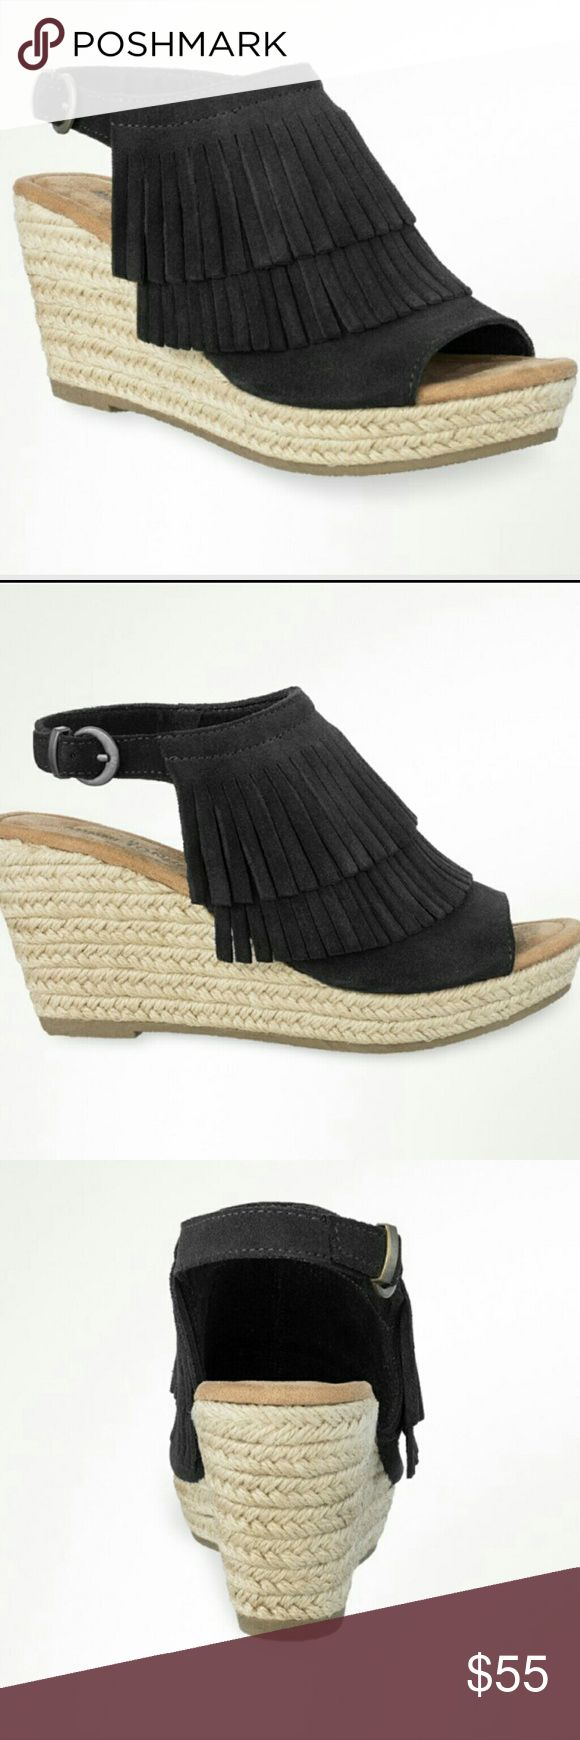 "Minnetonka ""Ashley "" suede wedges These three and a half inch jute wrapped wedges topped with two layers of soft suede fringe & buckled ankle straps offer the perfect mix of fashion and function!  Ideal for daily strolls or heading to a weekend festival, these sandals pair well with everything from denim to a flowey sundress.  Fashion and fun, minnetonka style reaches new heights!  Featuring sassy fringe detailing. BRAND NEW NEVER WORN Minnetonka Shoes Sandals"